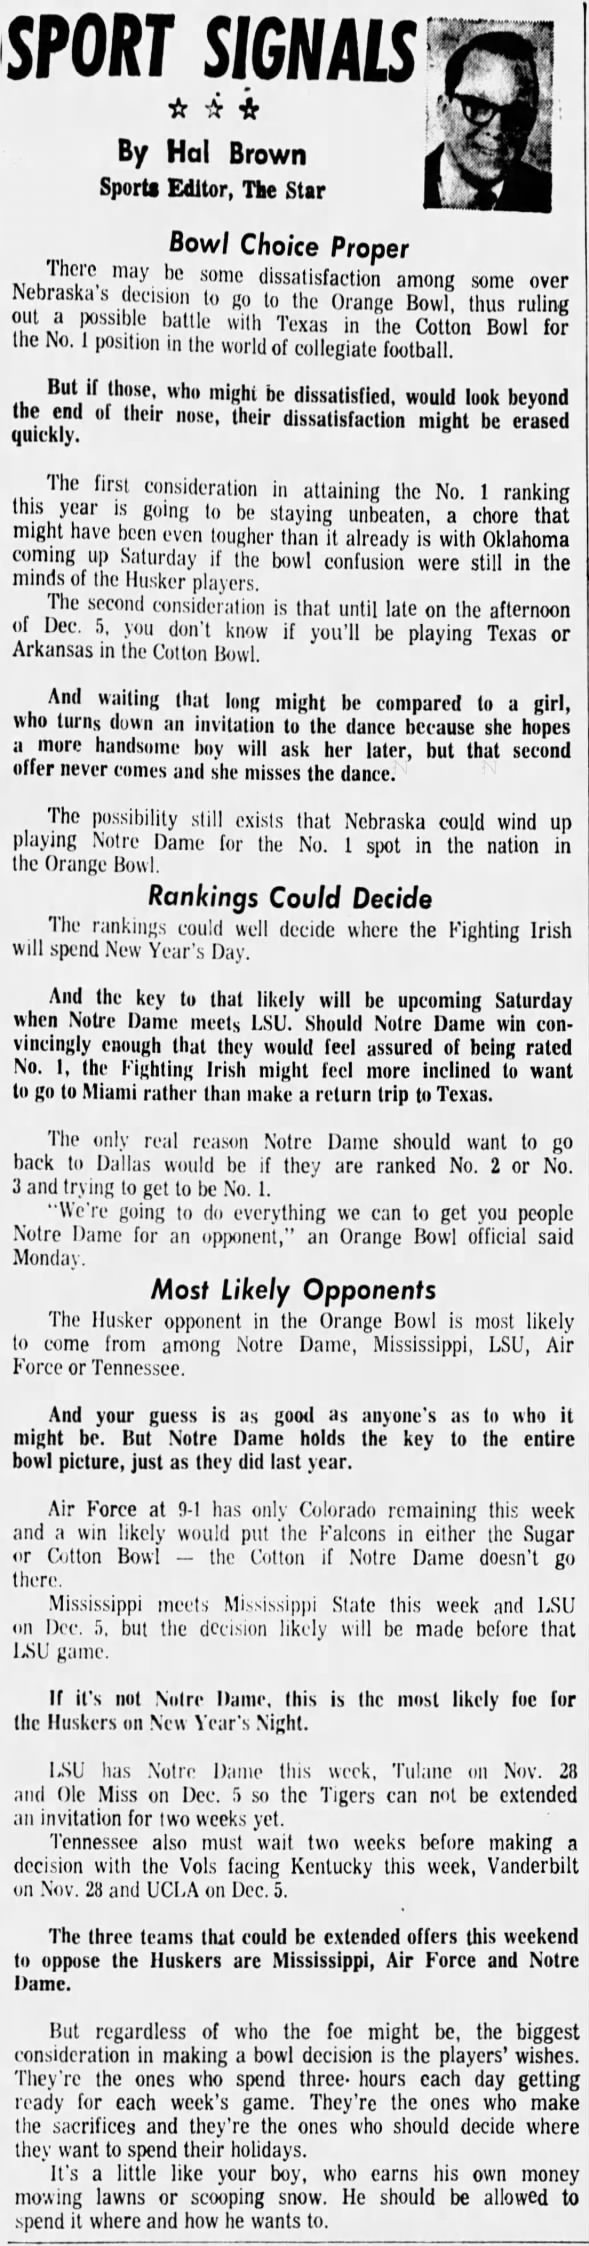 1971.11 Hal Brown on bowl choice